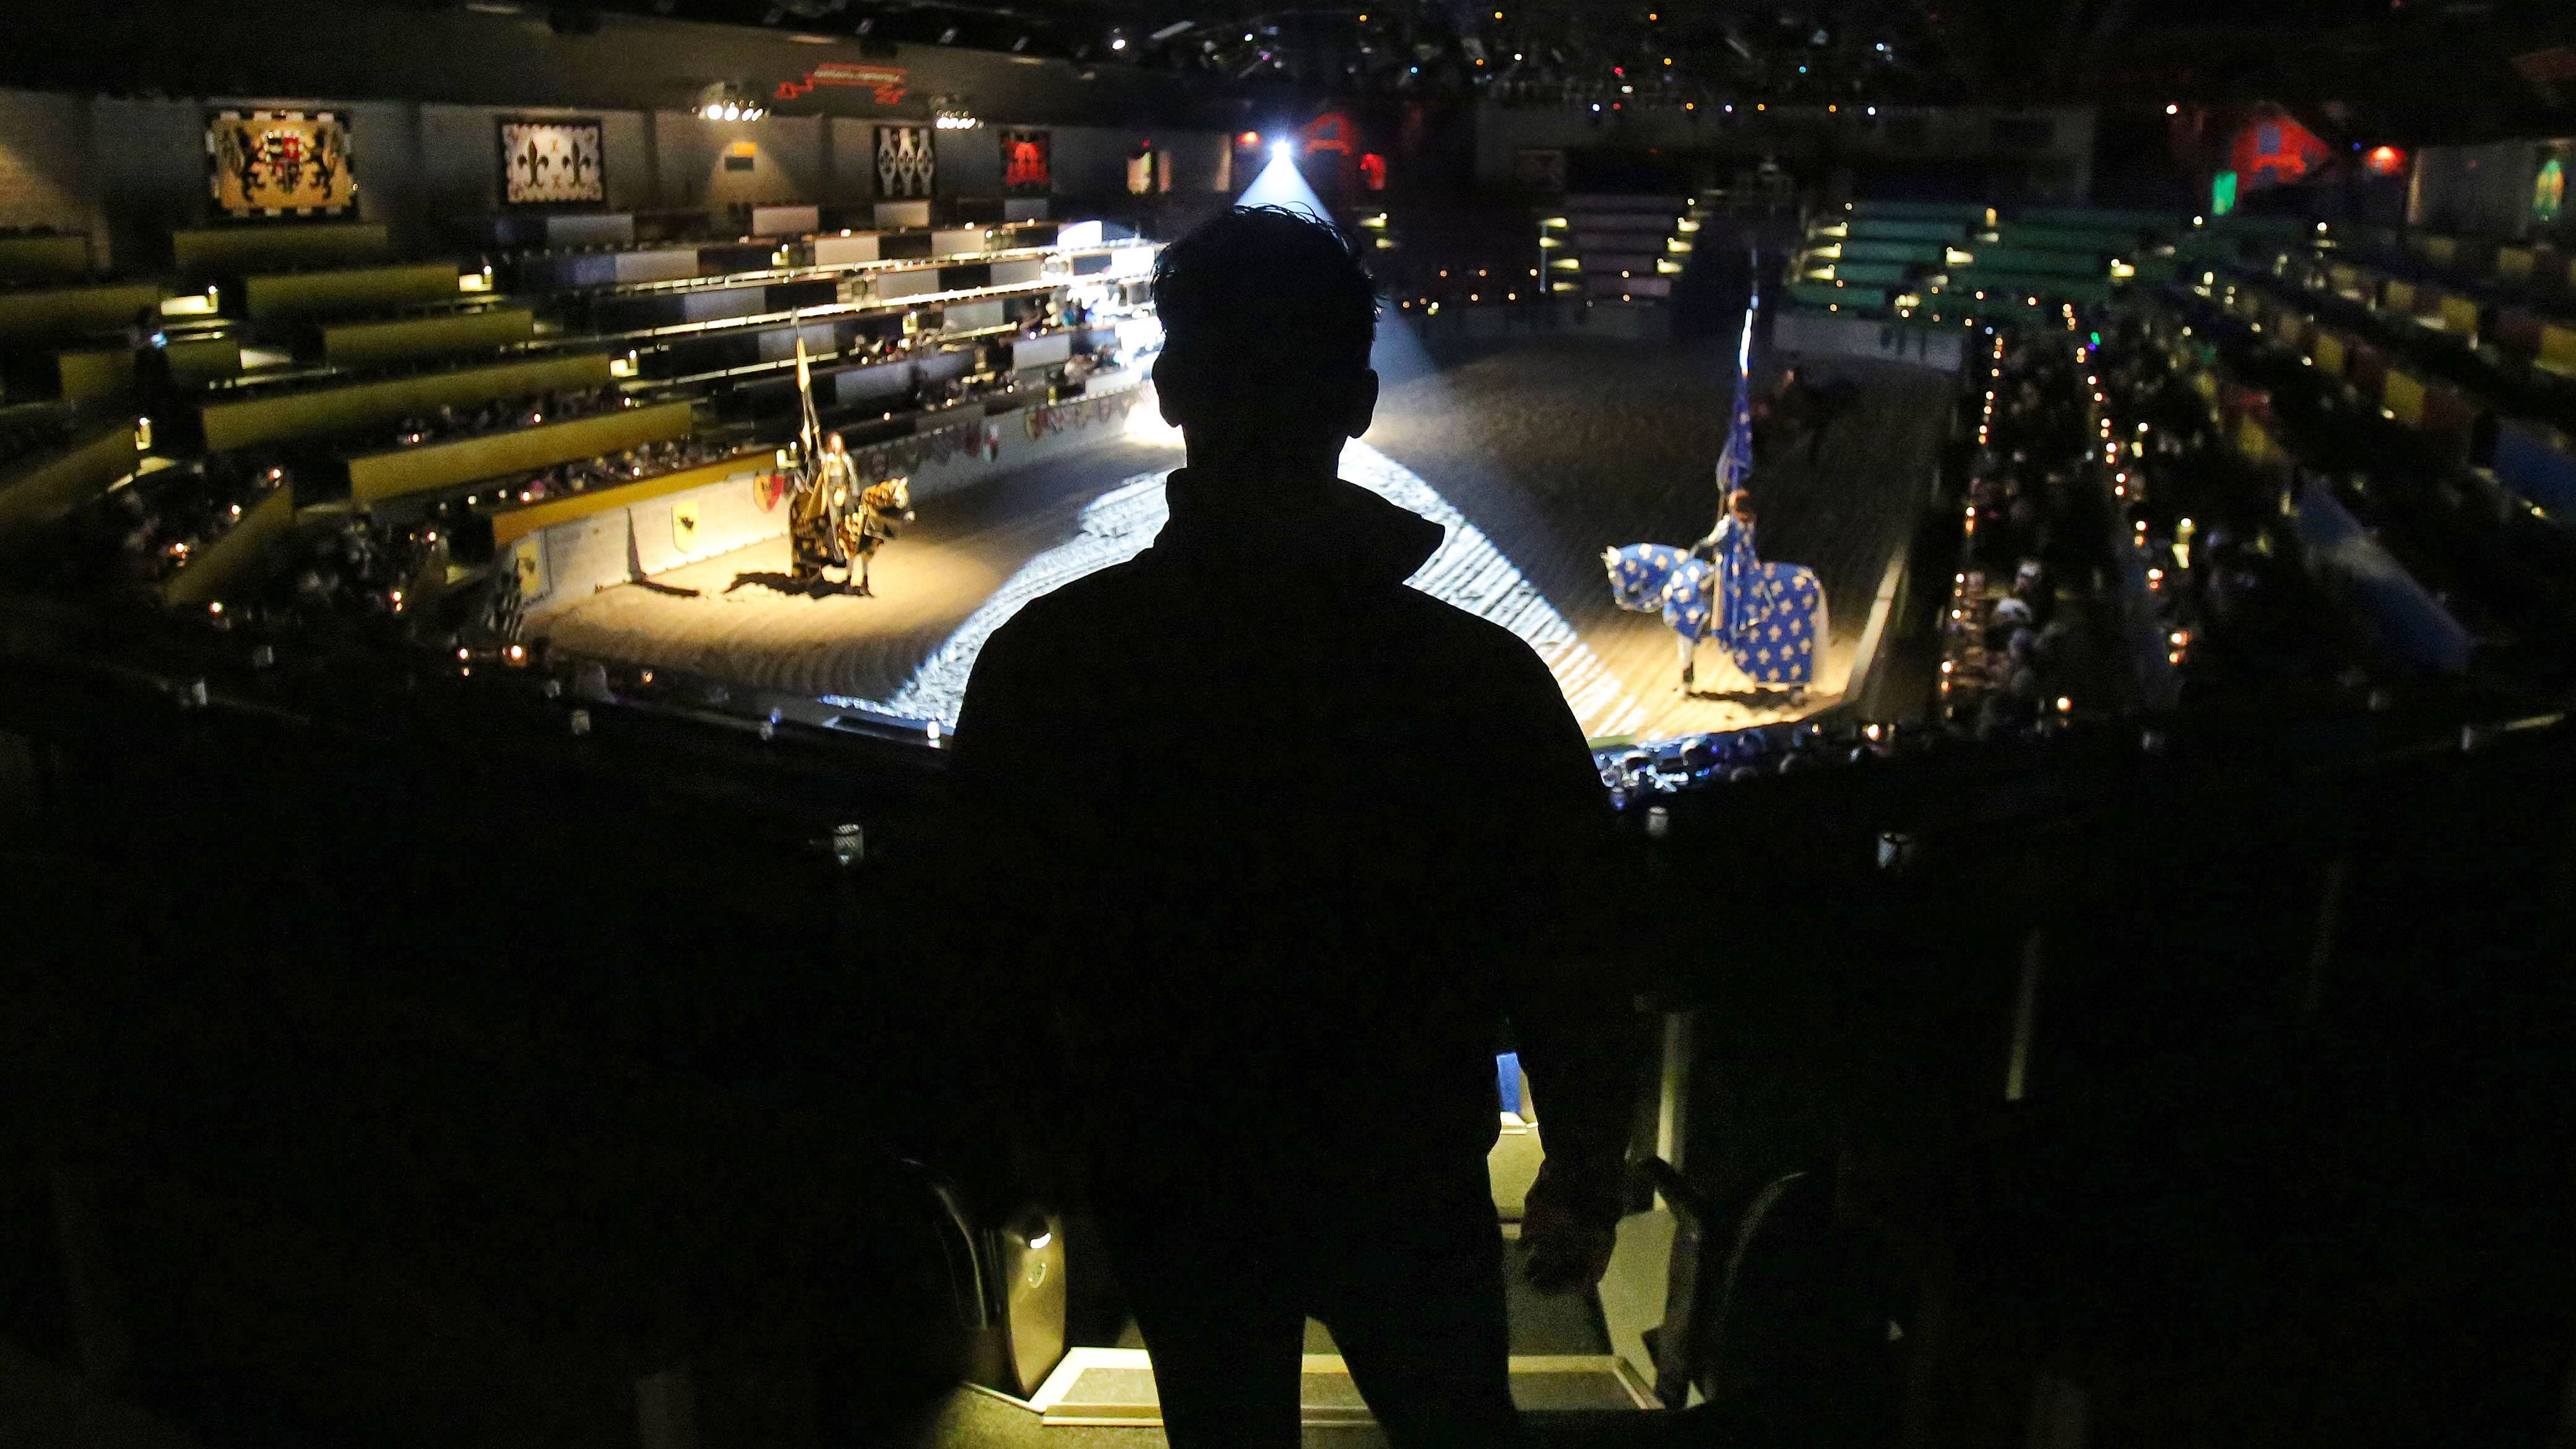 Mario Contreras watches a recent show at Medieval Times in Hoffman Estates, where he is the head horse trainer.